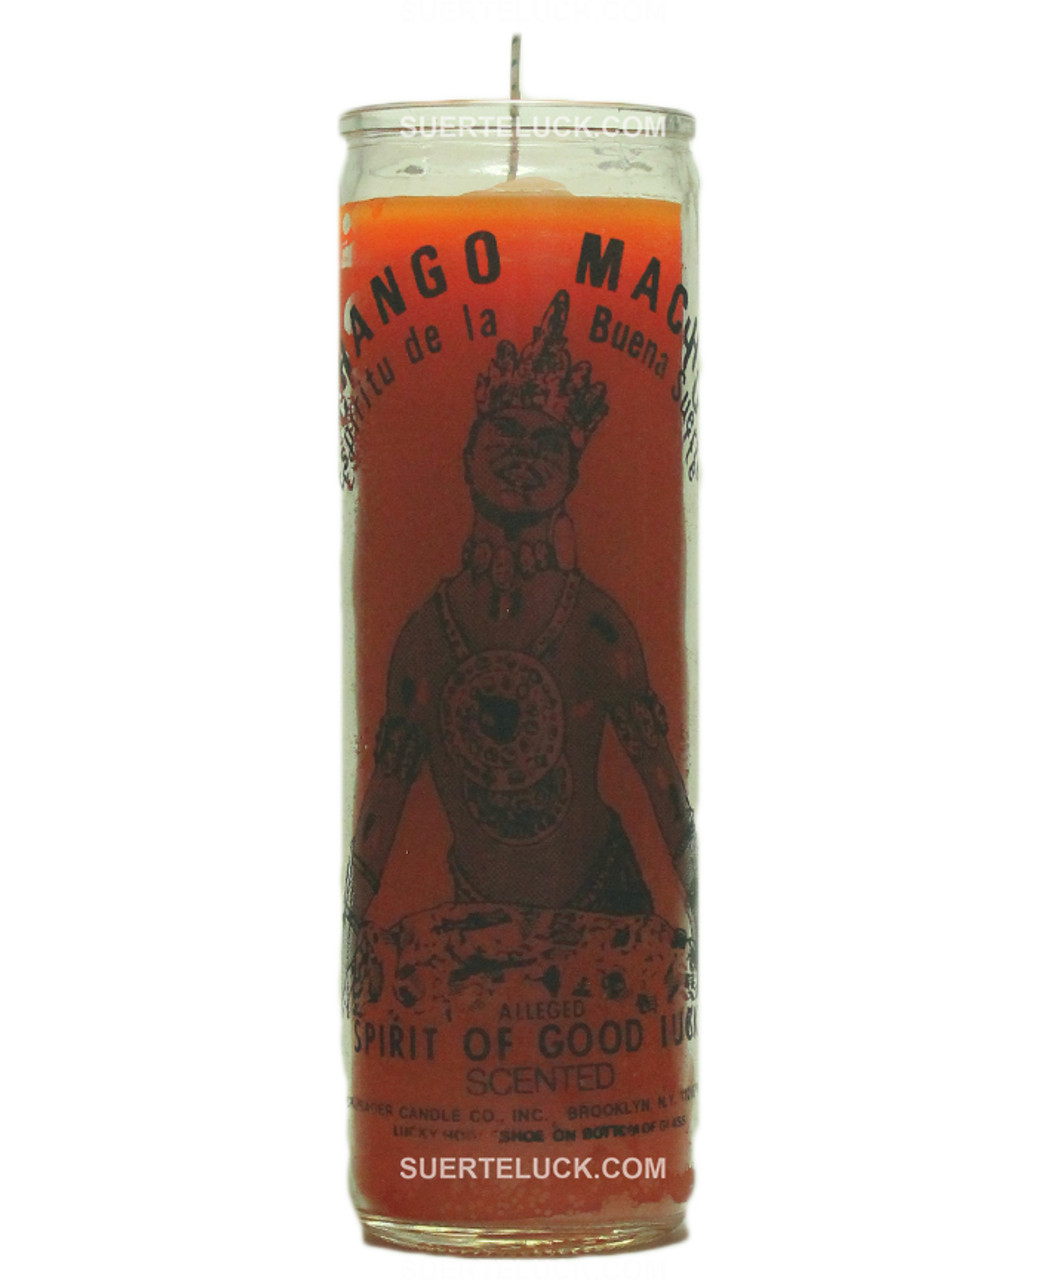 Chango Macho Scented Spiritual Candle -Vela De Chango